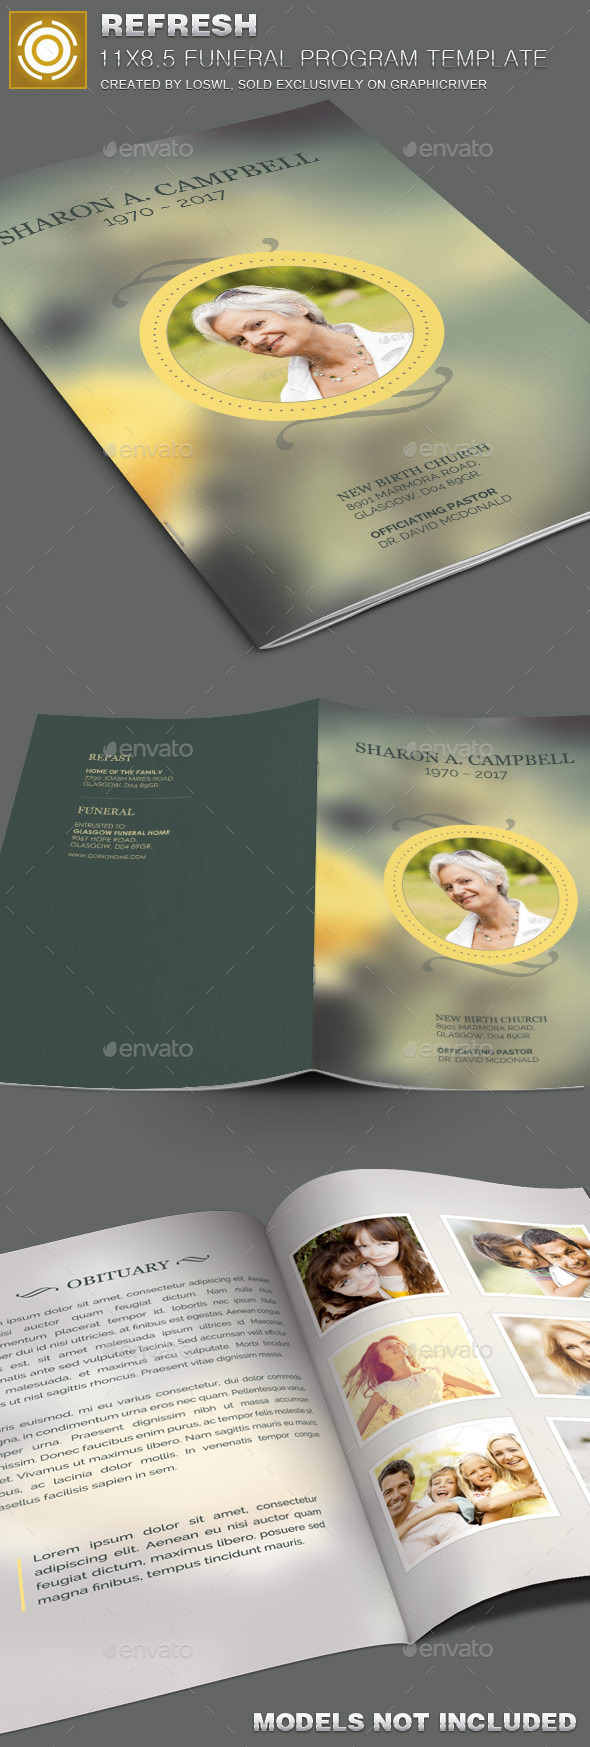 Refresh Funeral Program Template